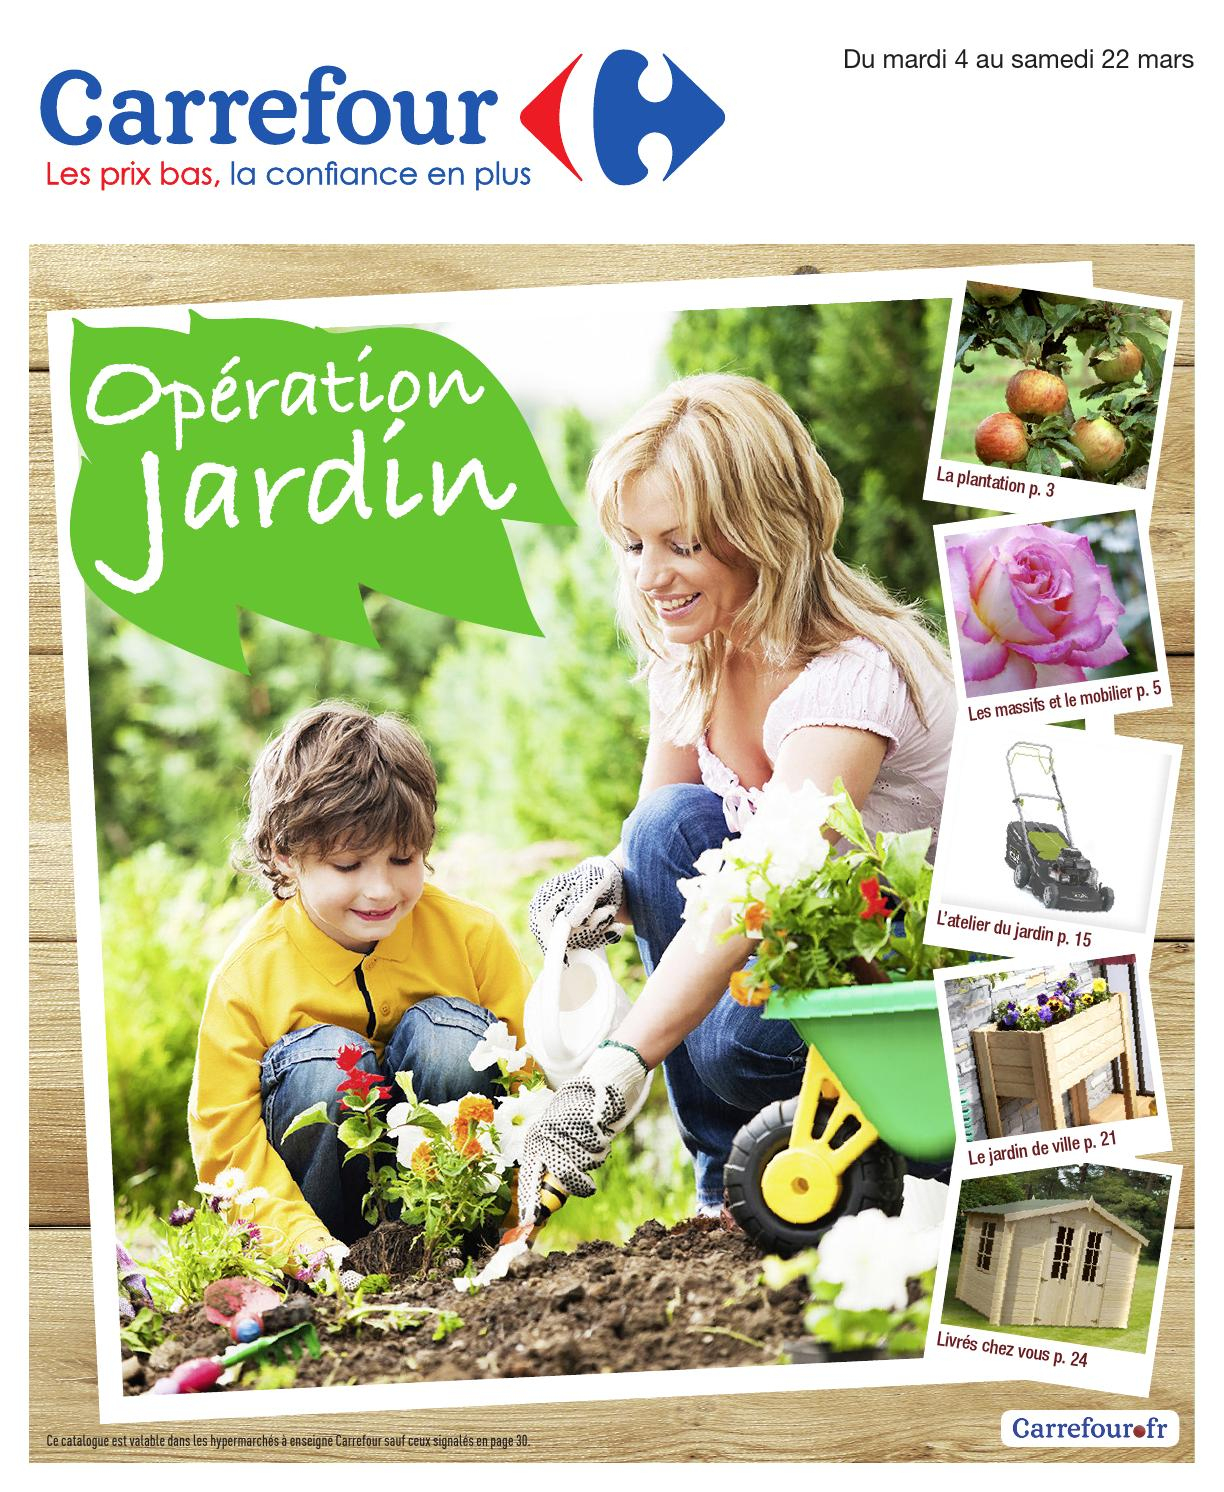 Catalogue Carrefour - 4-22.03.2014 By Joe Monroe - Issuu intérieur Abris De Jardin Carrefour